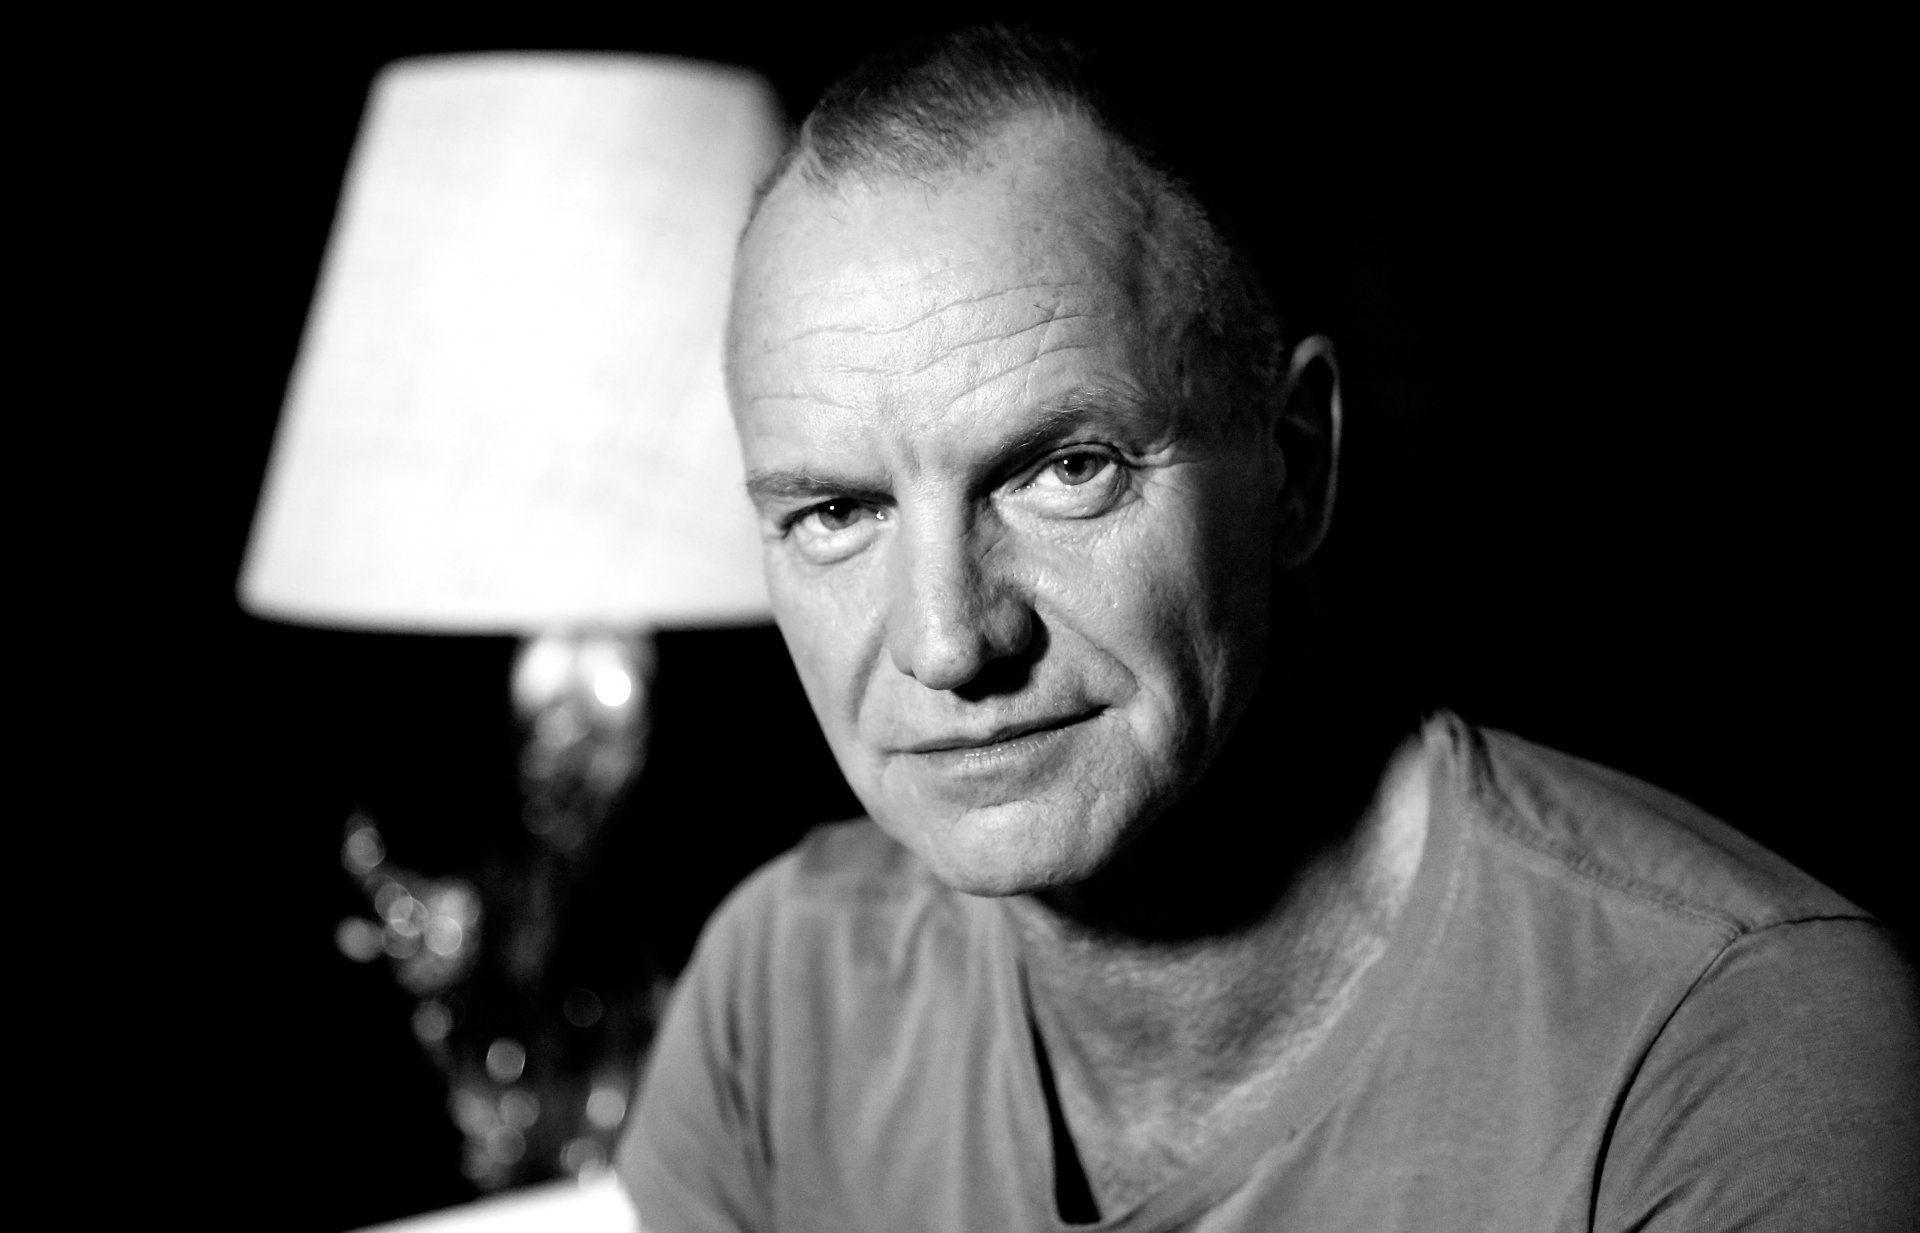 sting sting gordon matthew thomas sumner british rock musician ...